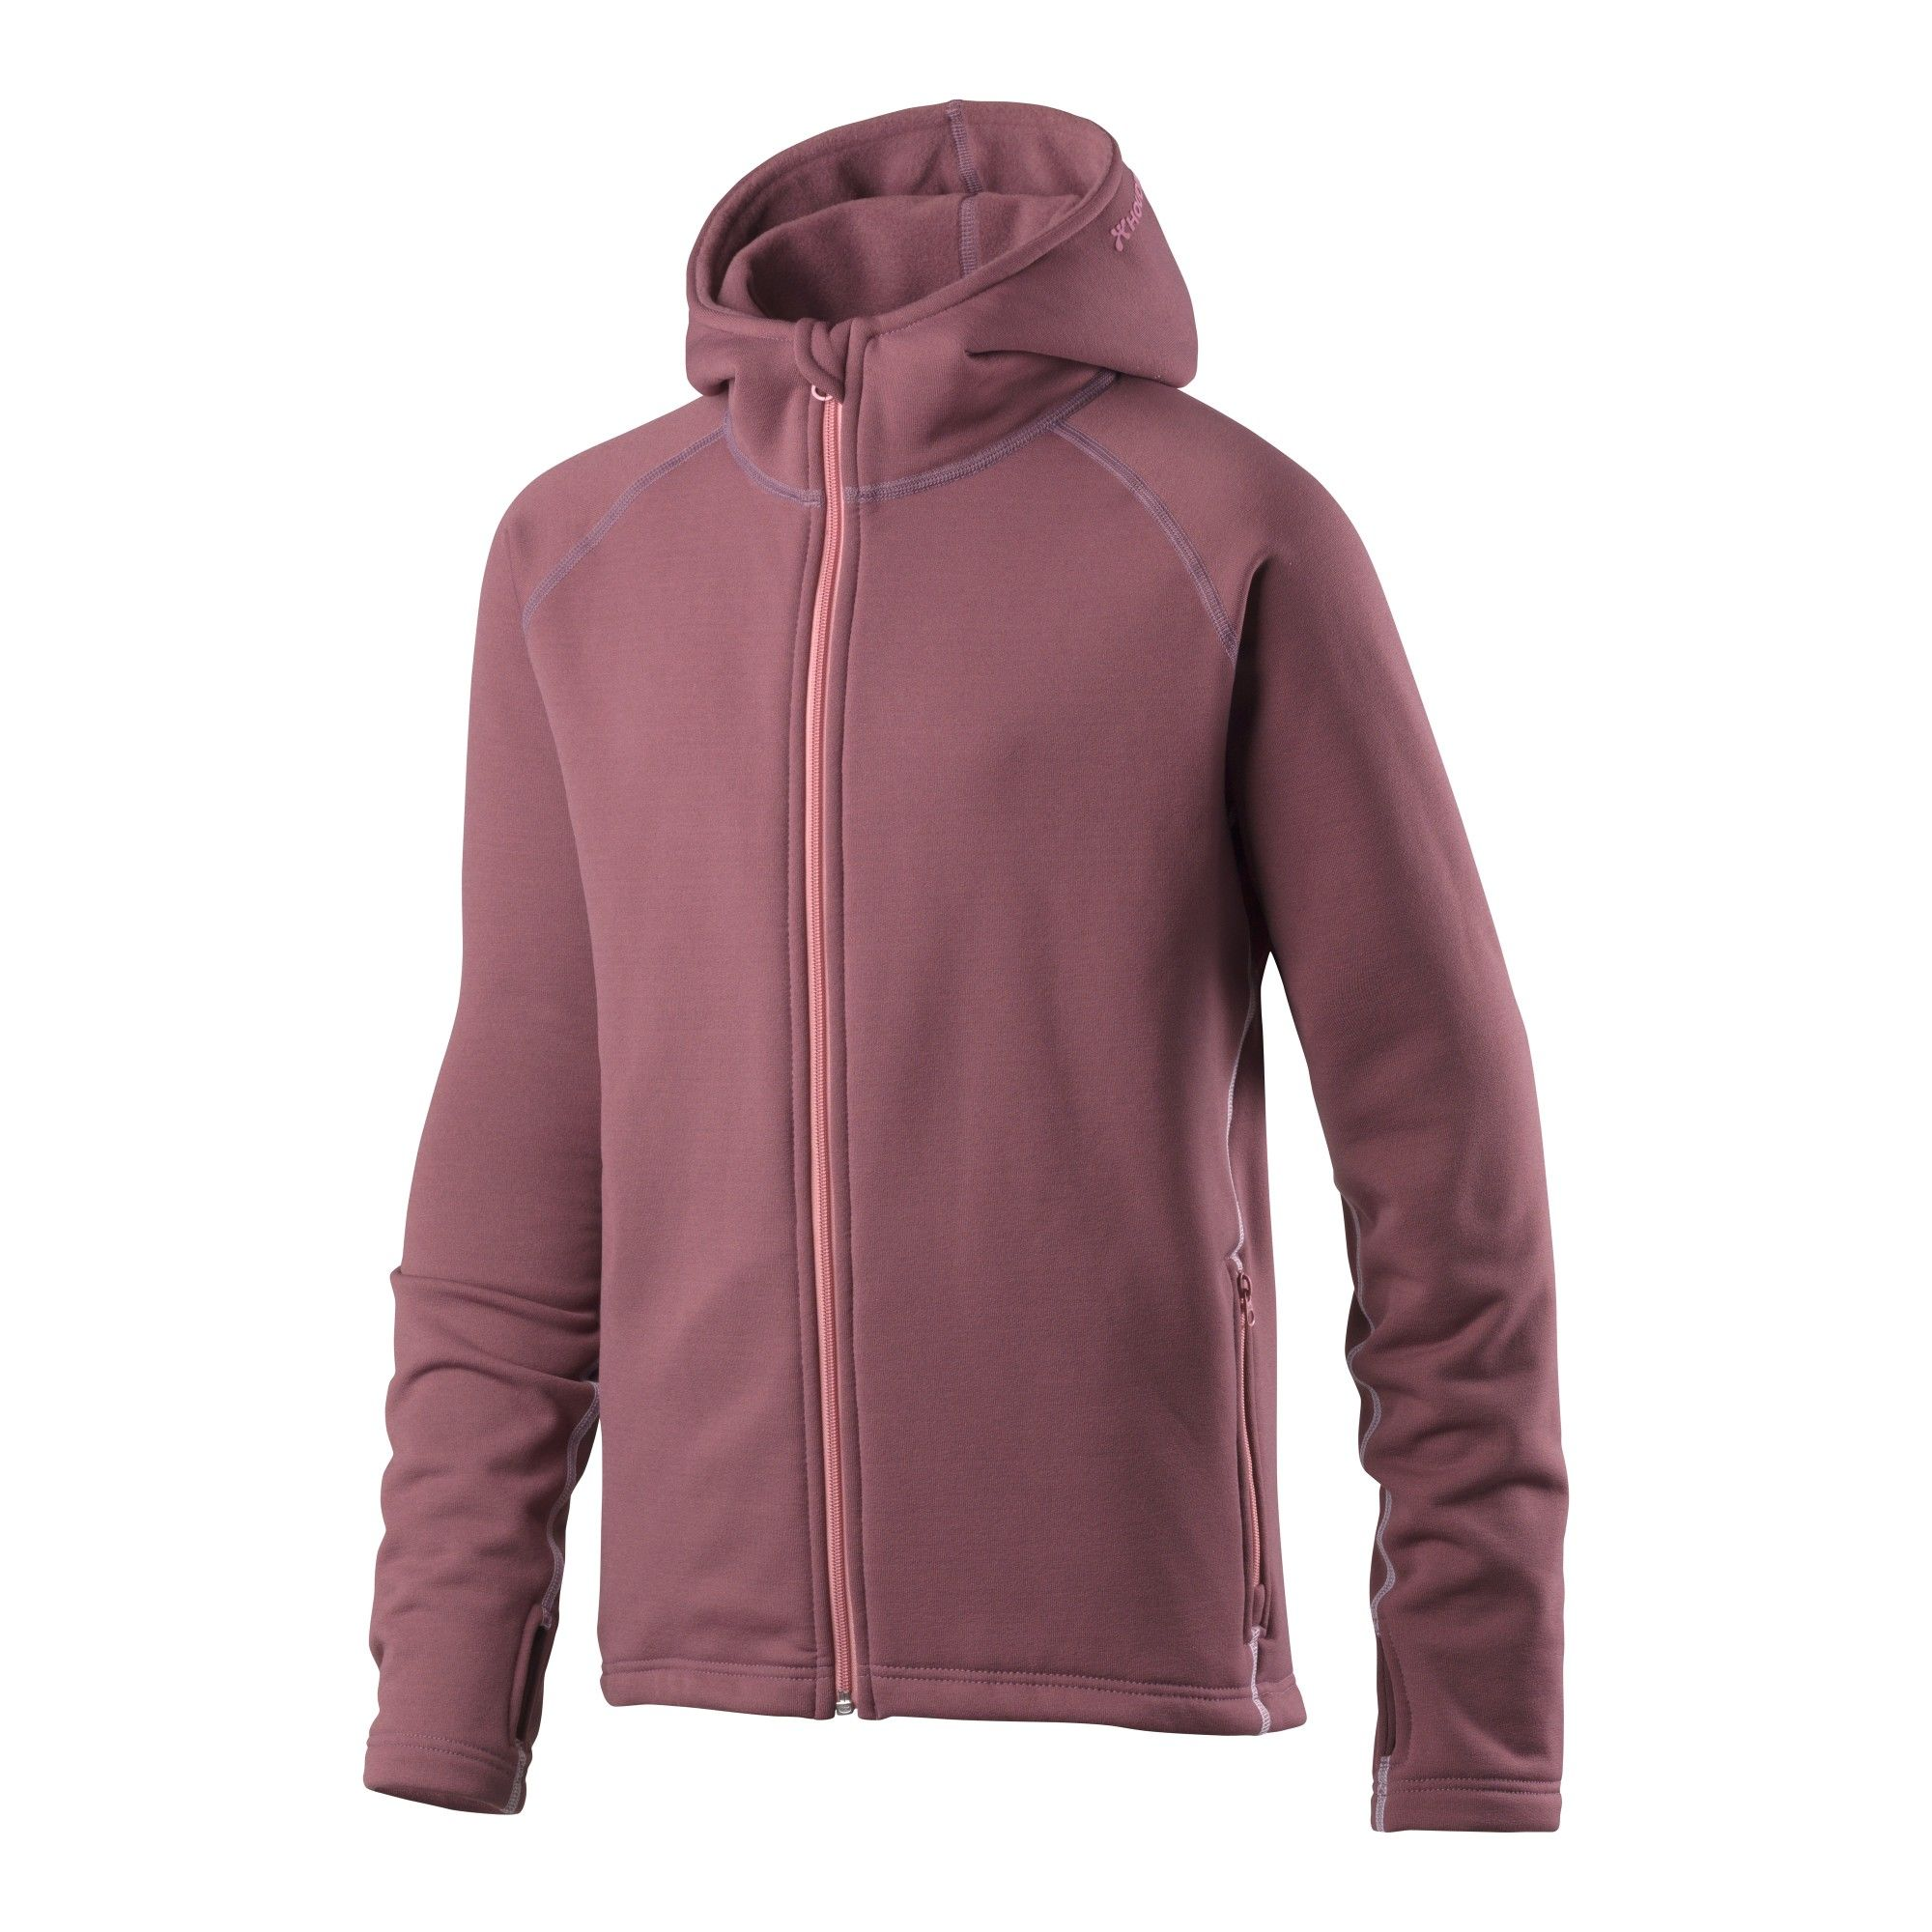 Houdini Juniors Power Houdi | Größe 130,140,150,160 | Kinder Fleecejacke